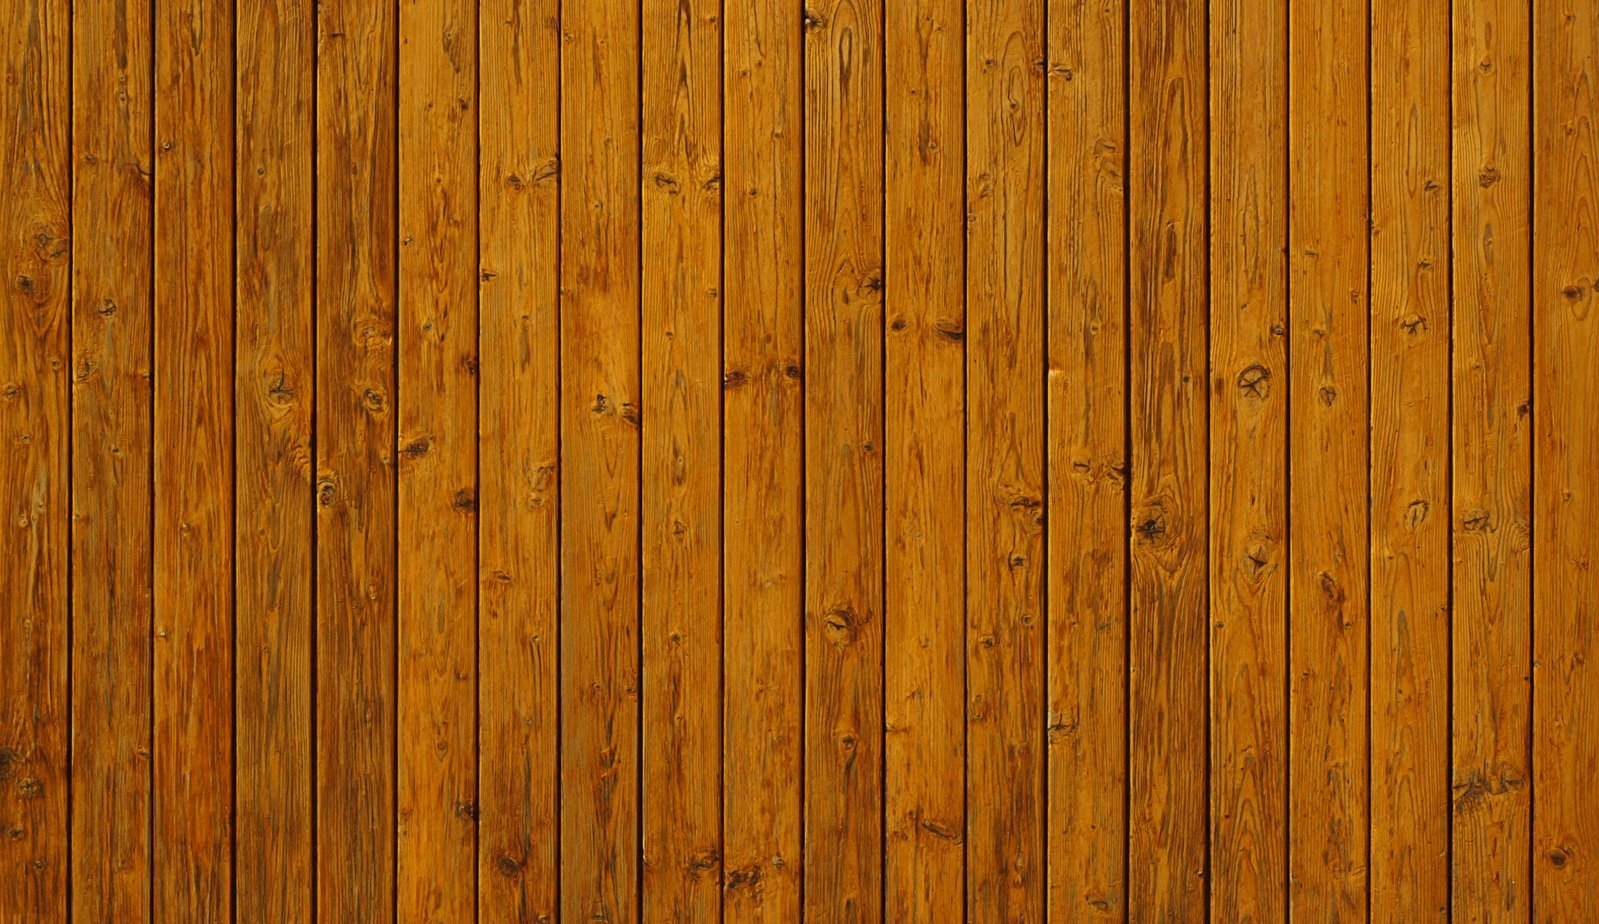 Free Old Wood Texture Stock Photo Freeimages Com